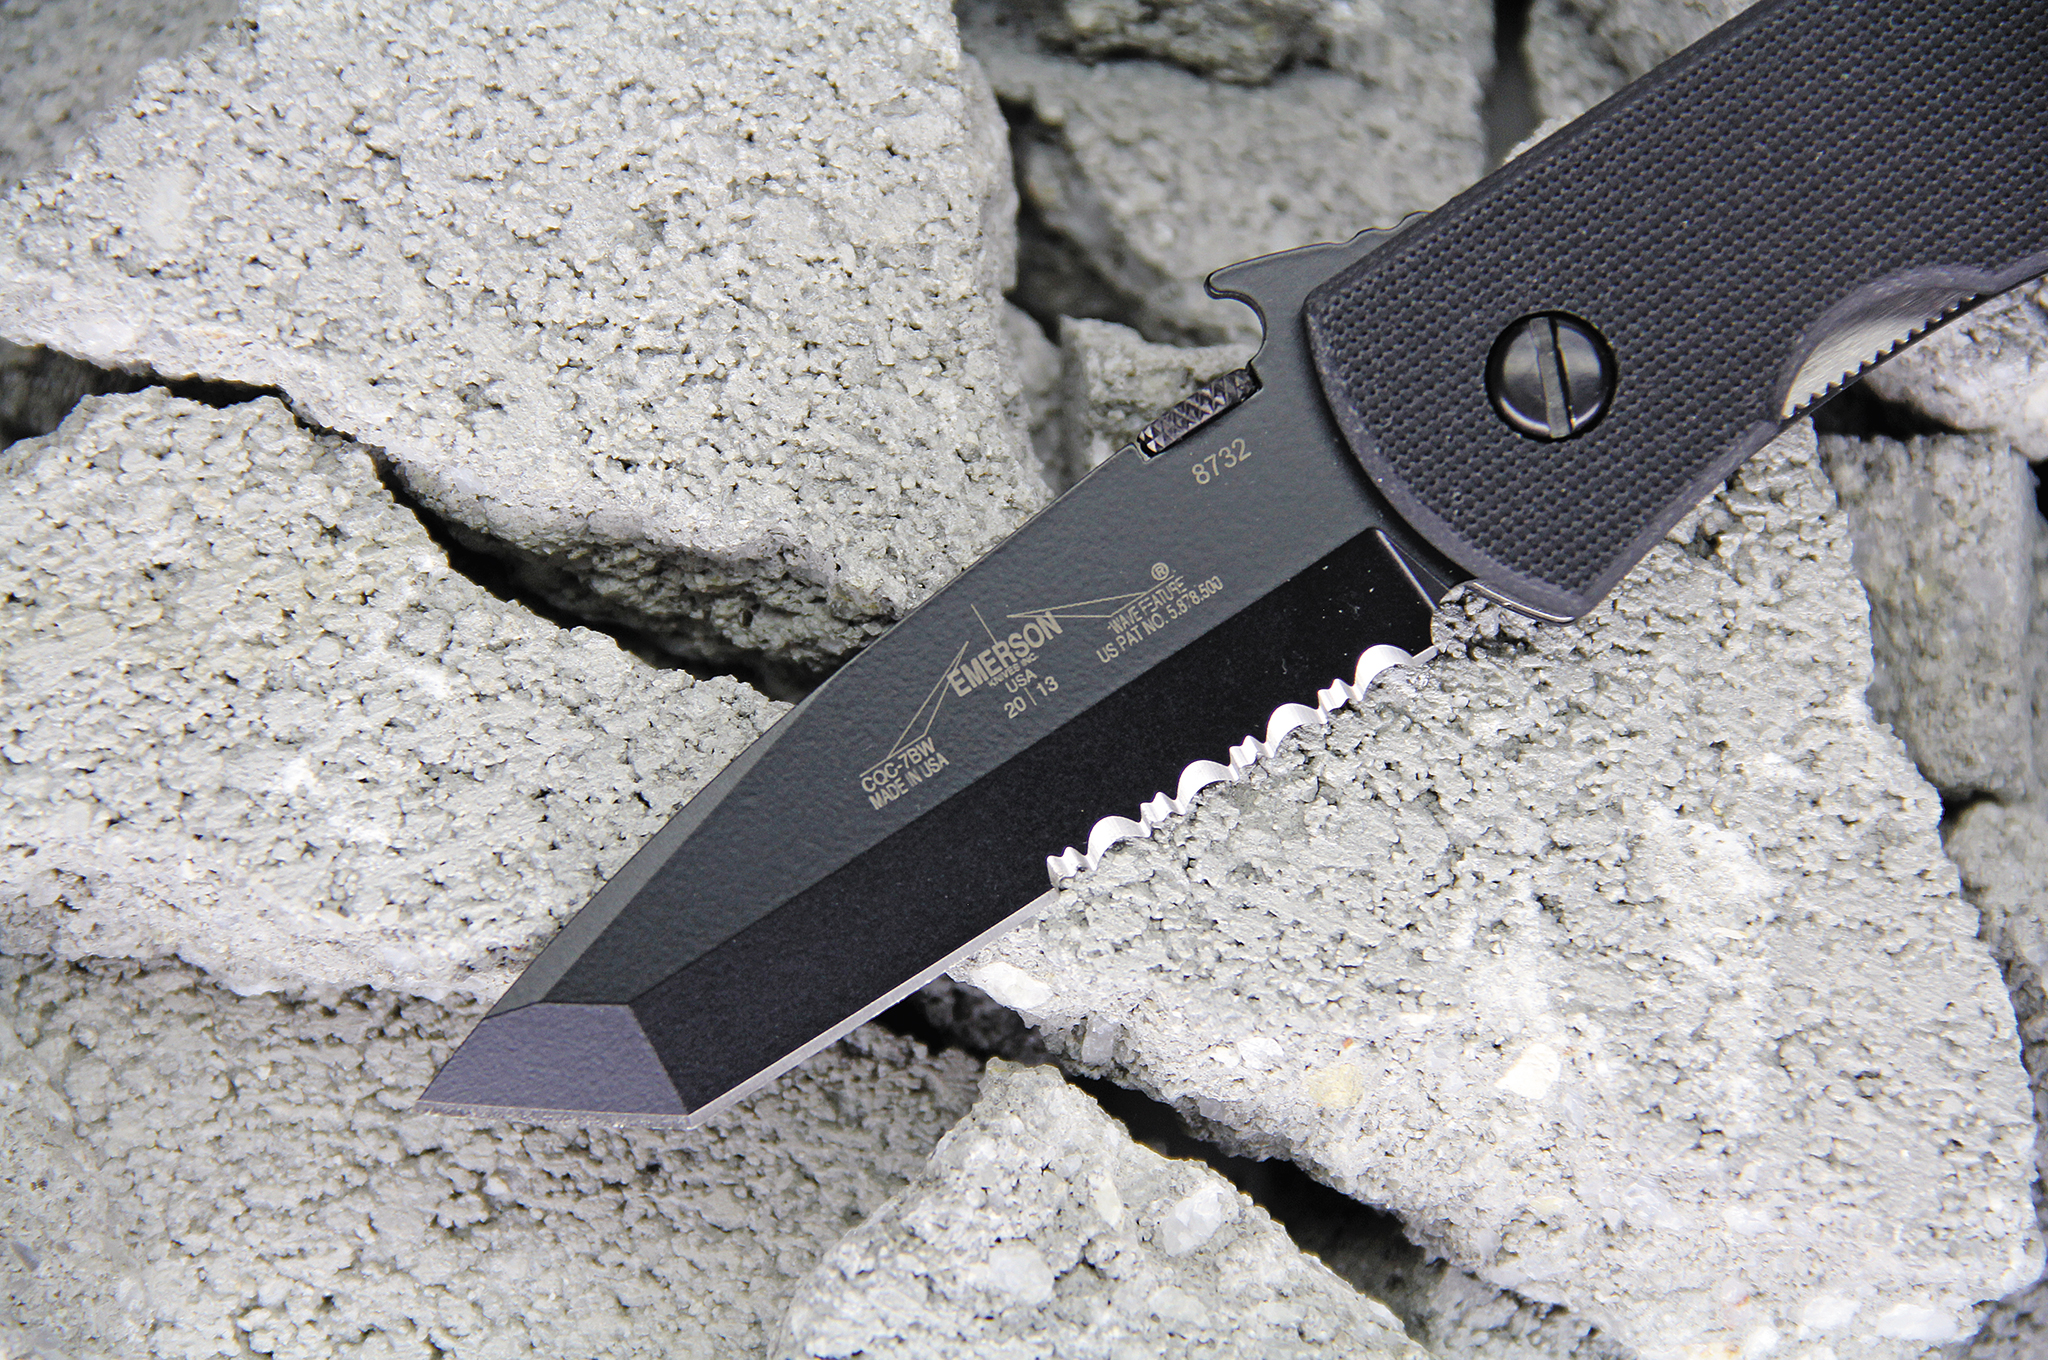 emerson-knives-inc-cqc-7bw-blade-close-up